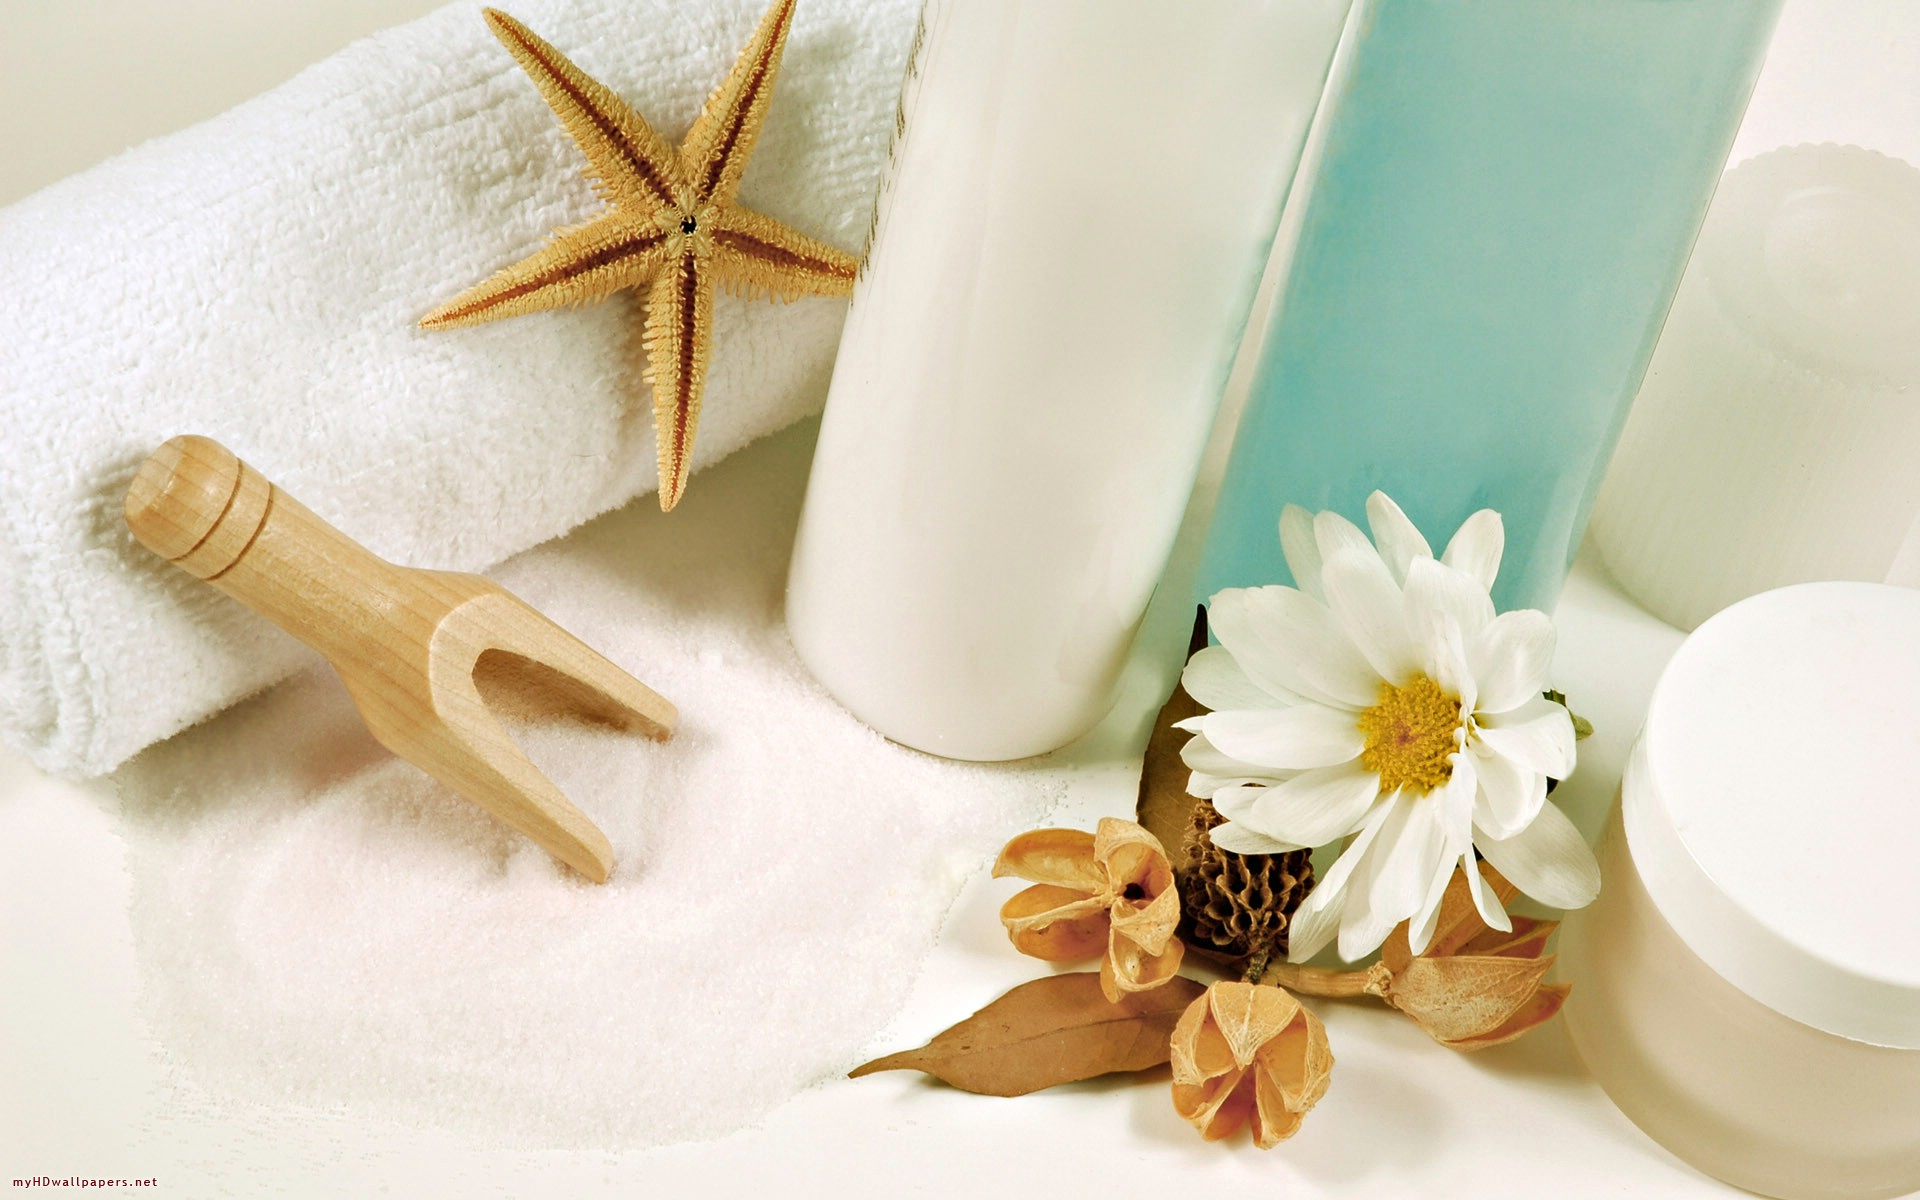 DIY Spa Treatments: 10 Recipes for At-Home Pampering